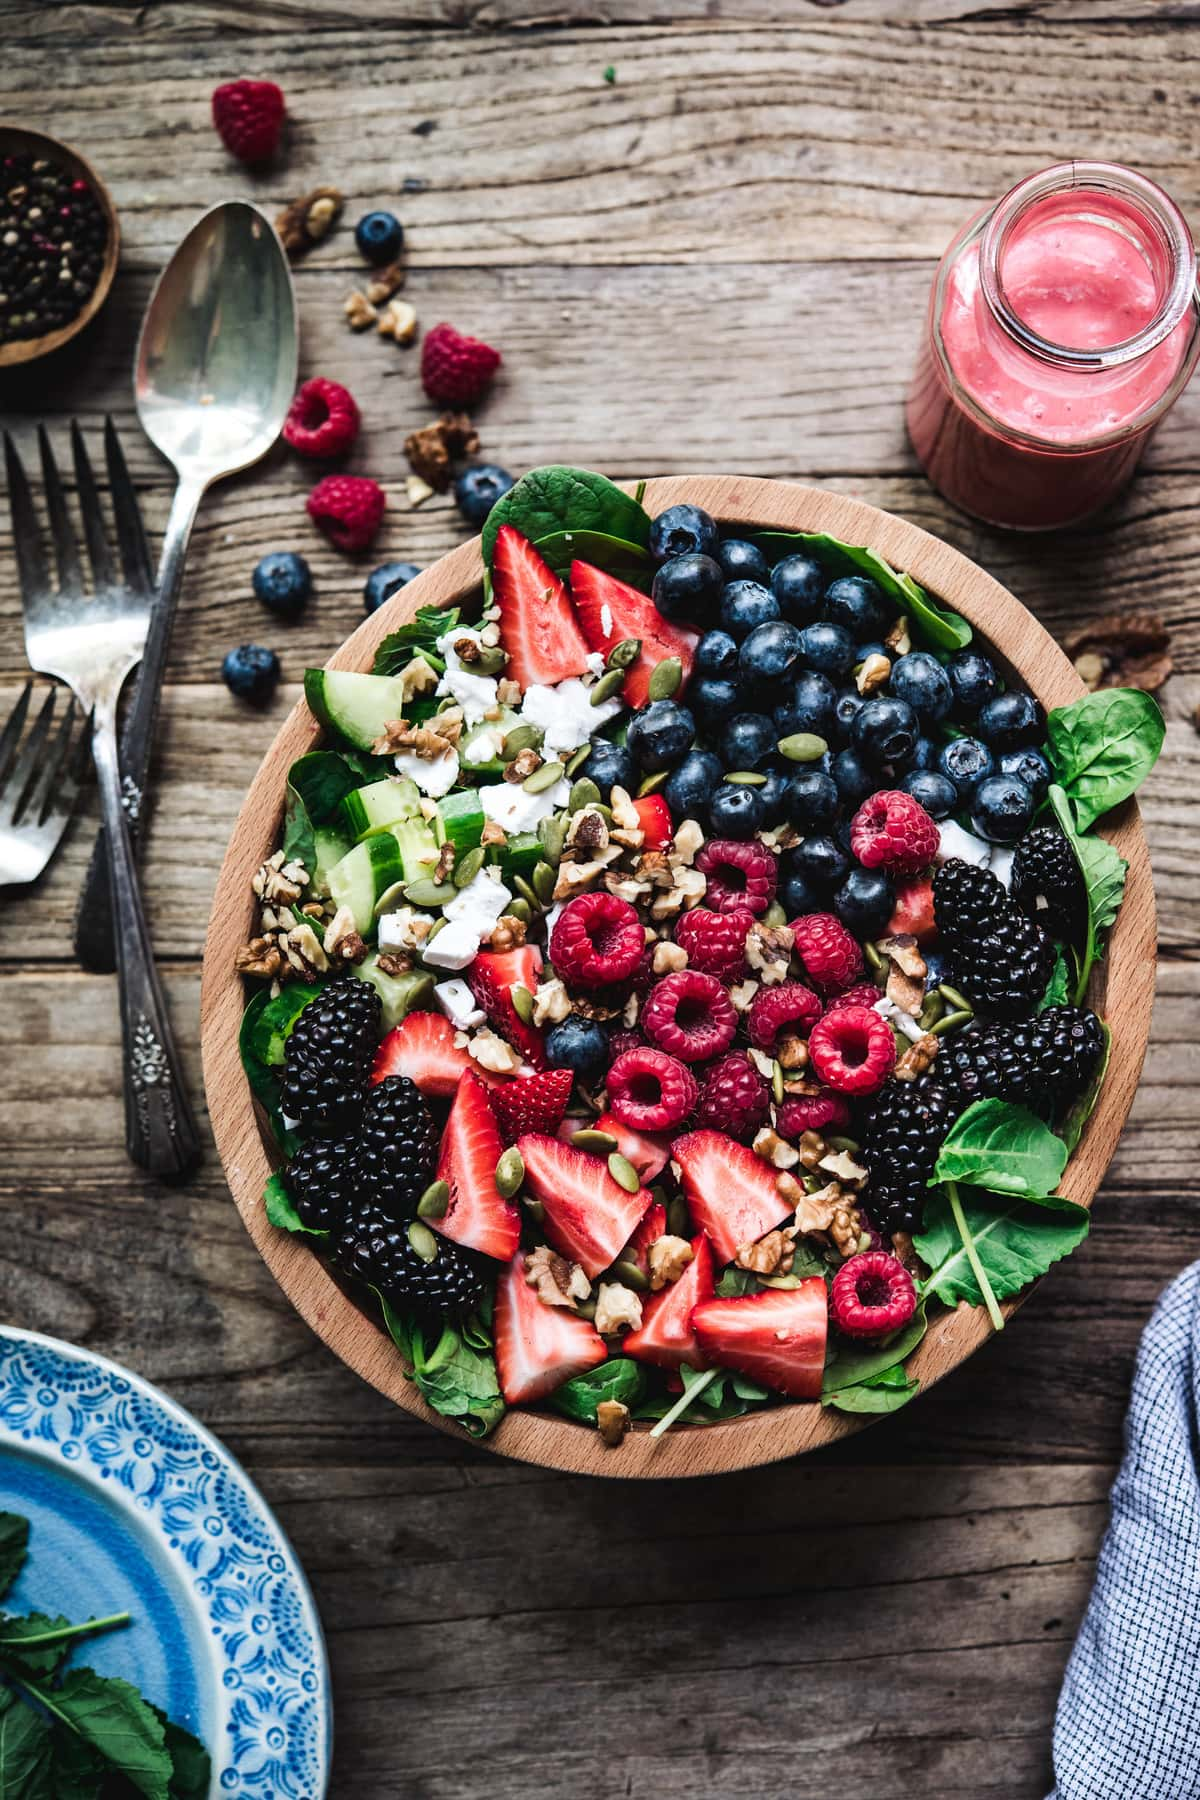 Overhead view of berry spinach salad with feta and cucumbers in wooden bowl